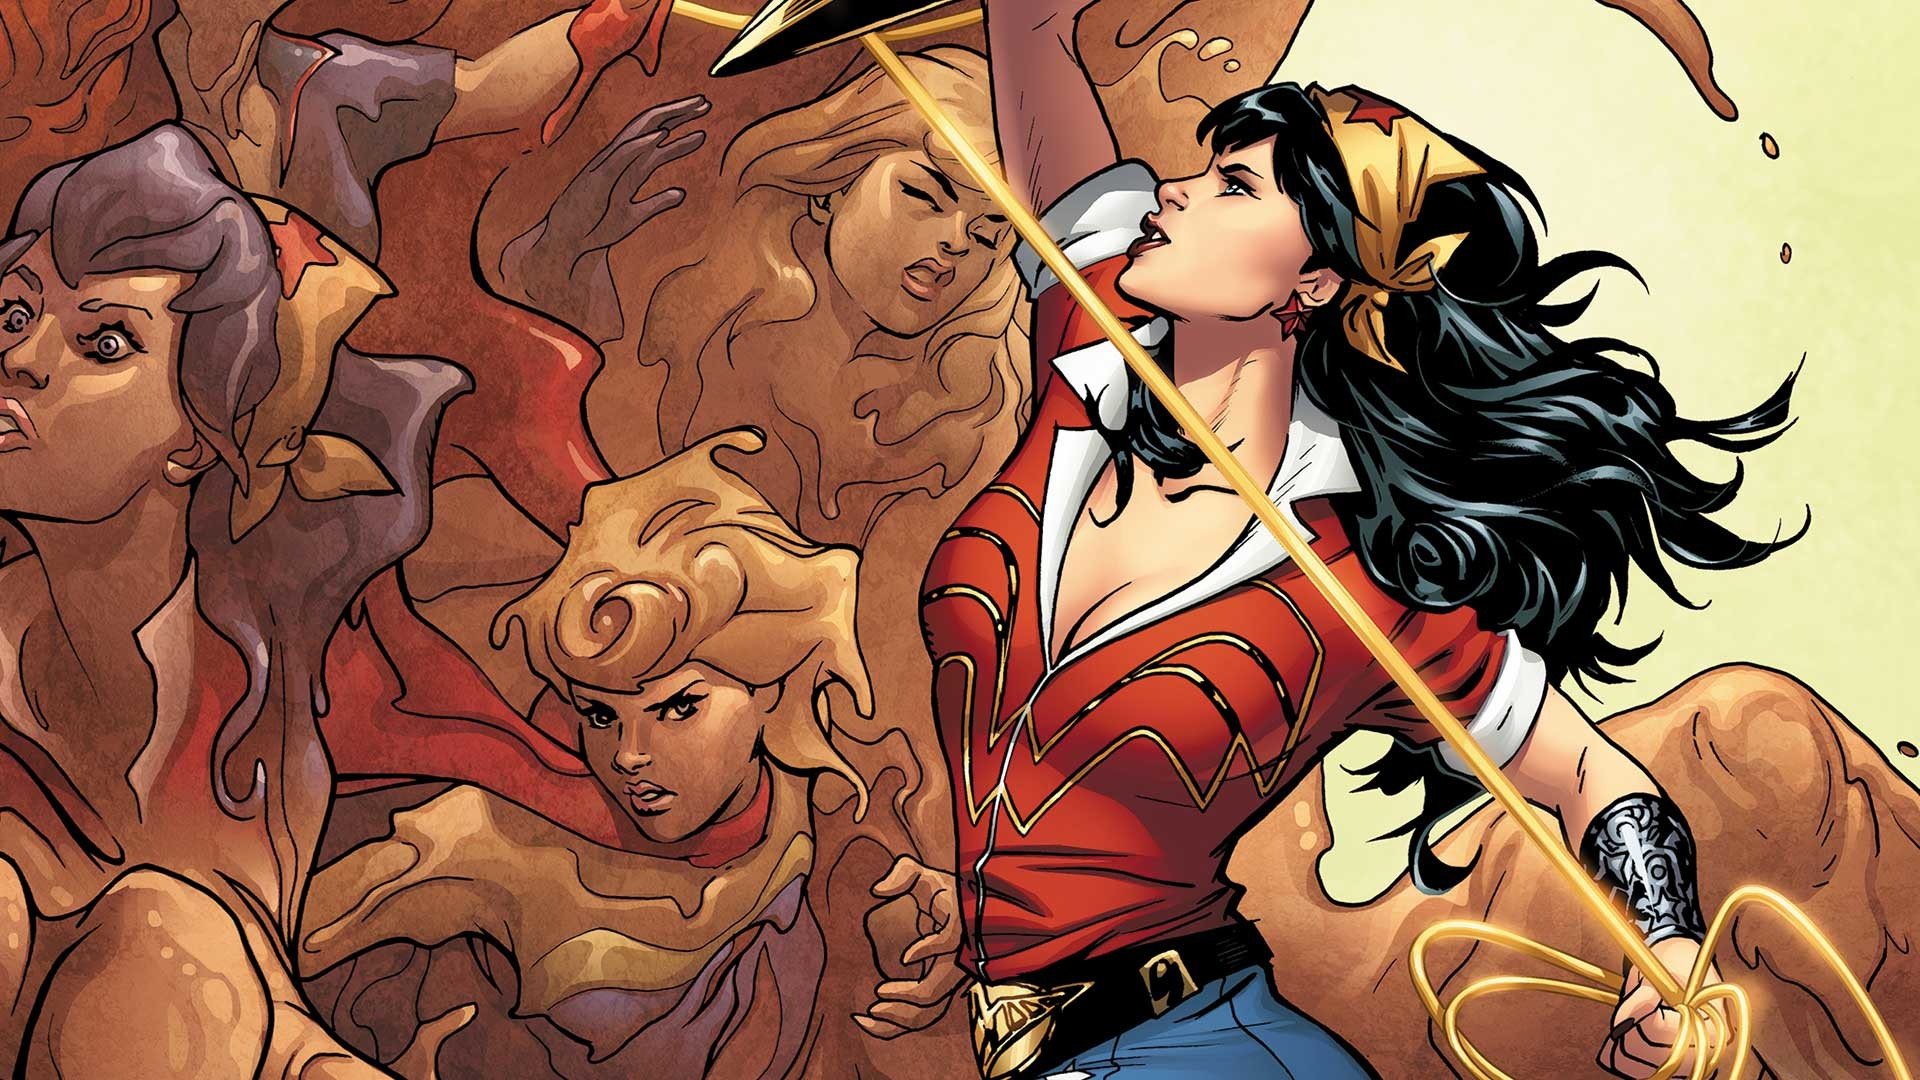 Res: 1920x1080, BOMBSHELLS UNITED #5 cover by Emanuela Lupacchino